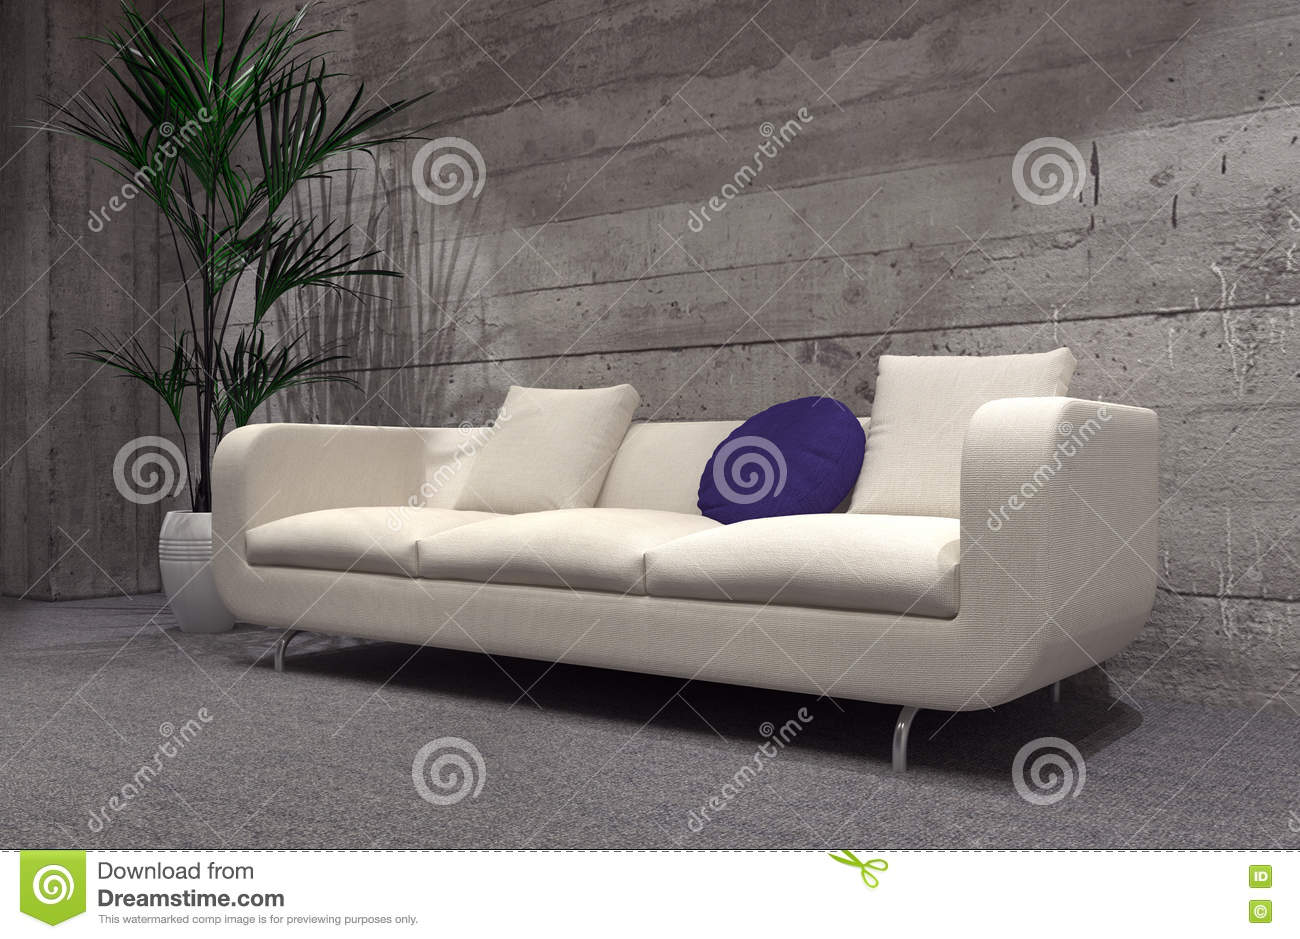 Brick Meubles Divan Lit Large Modern Sofa In Front Of A Cement Brick Wall Stock